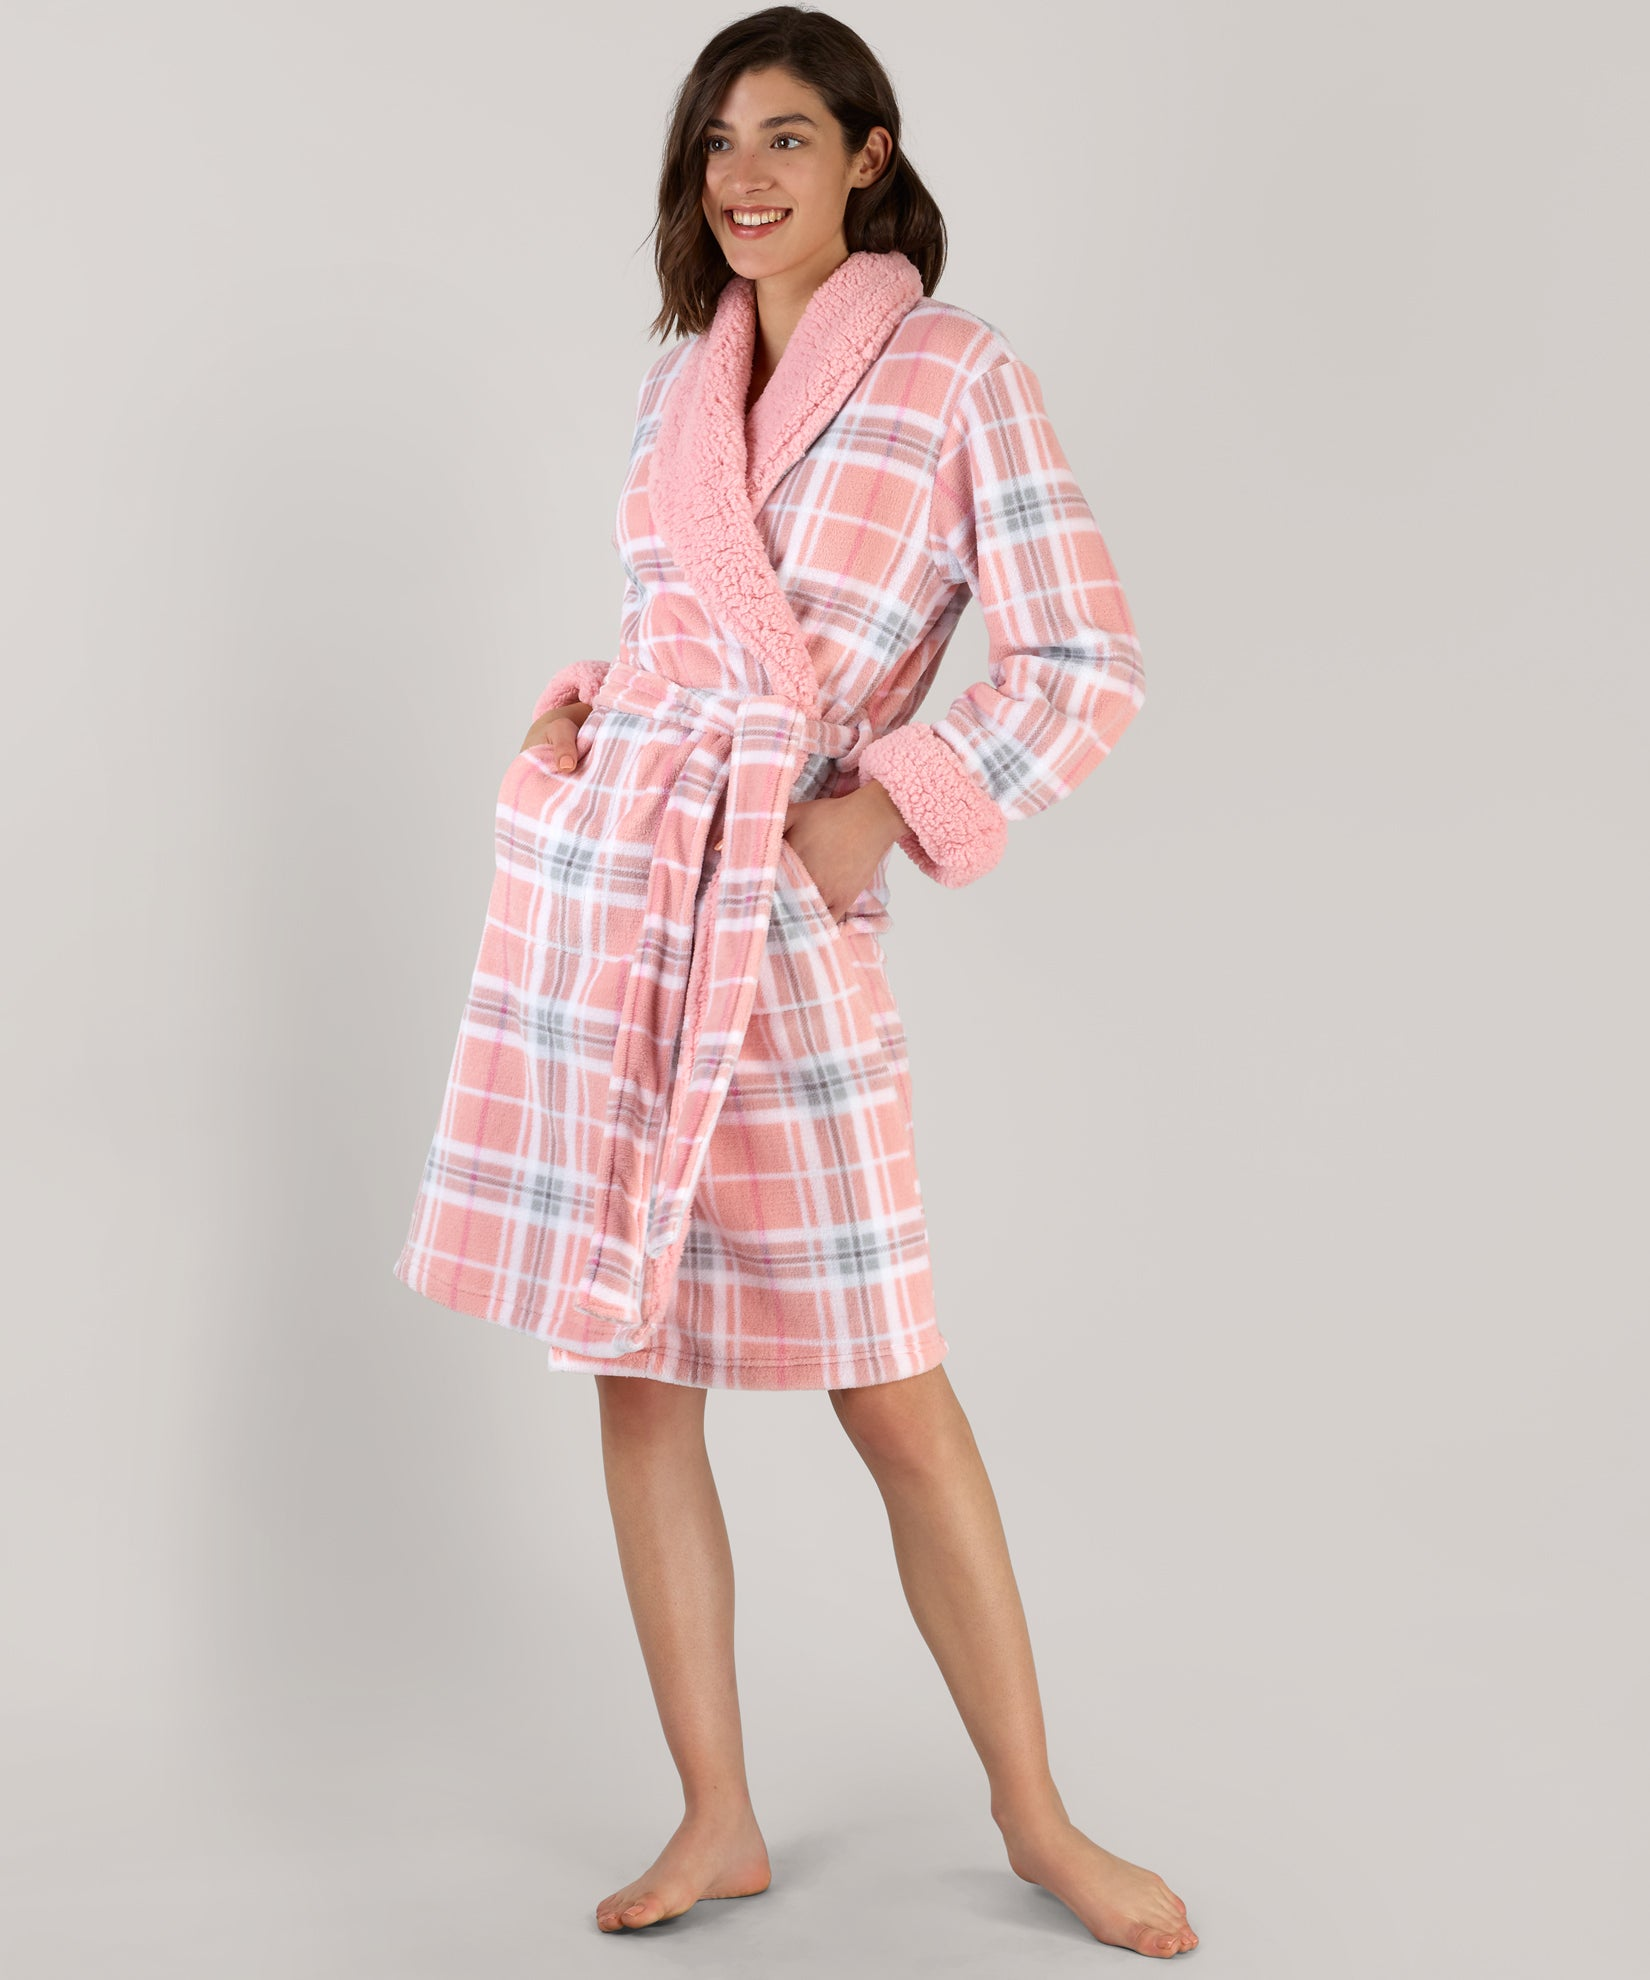 Pink Plaid Plush Robe - Pink Plaid Plush Robe